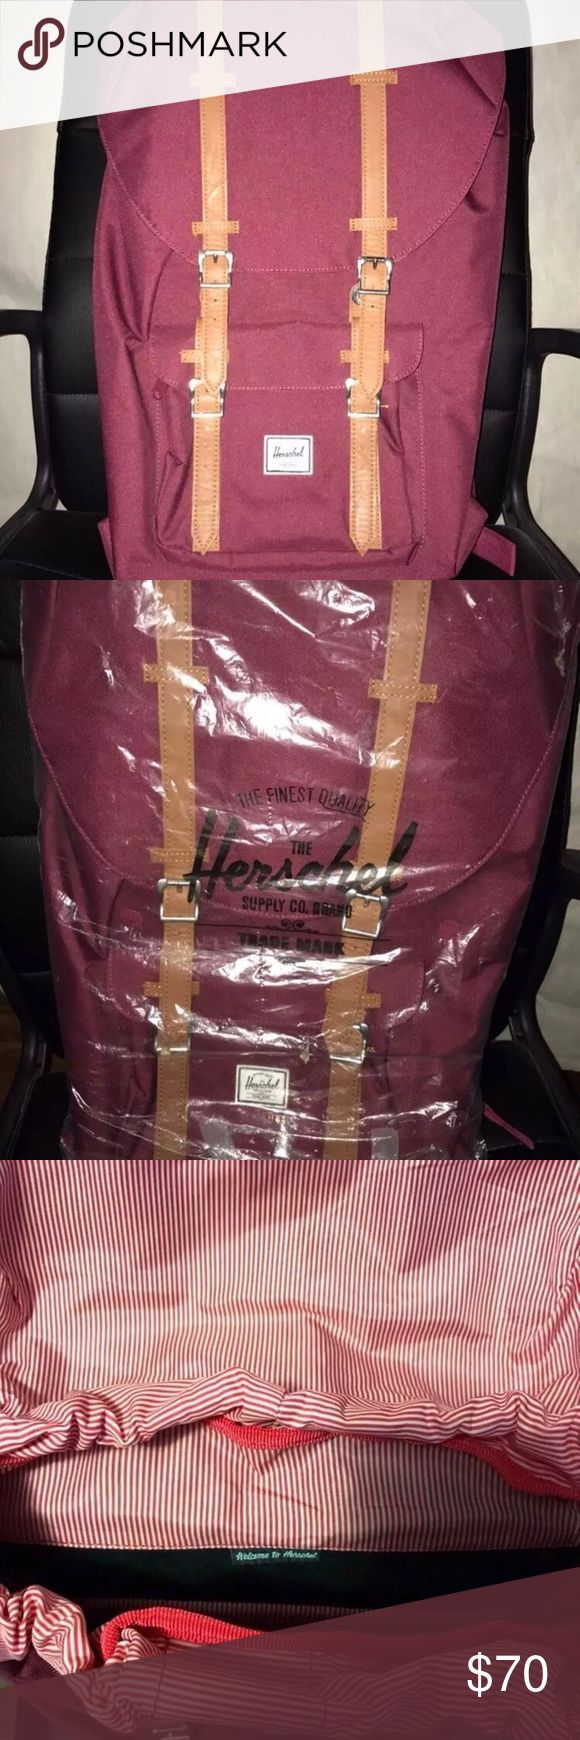 Hershel Supply Little America Like new condition. Windsor wine color. Used once just for a trip. It retails for around $100. Price is negotiable, but please no low ballers. Thanks! Herschel Supply Company Bags Backpacks